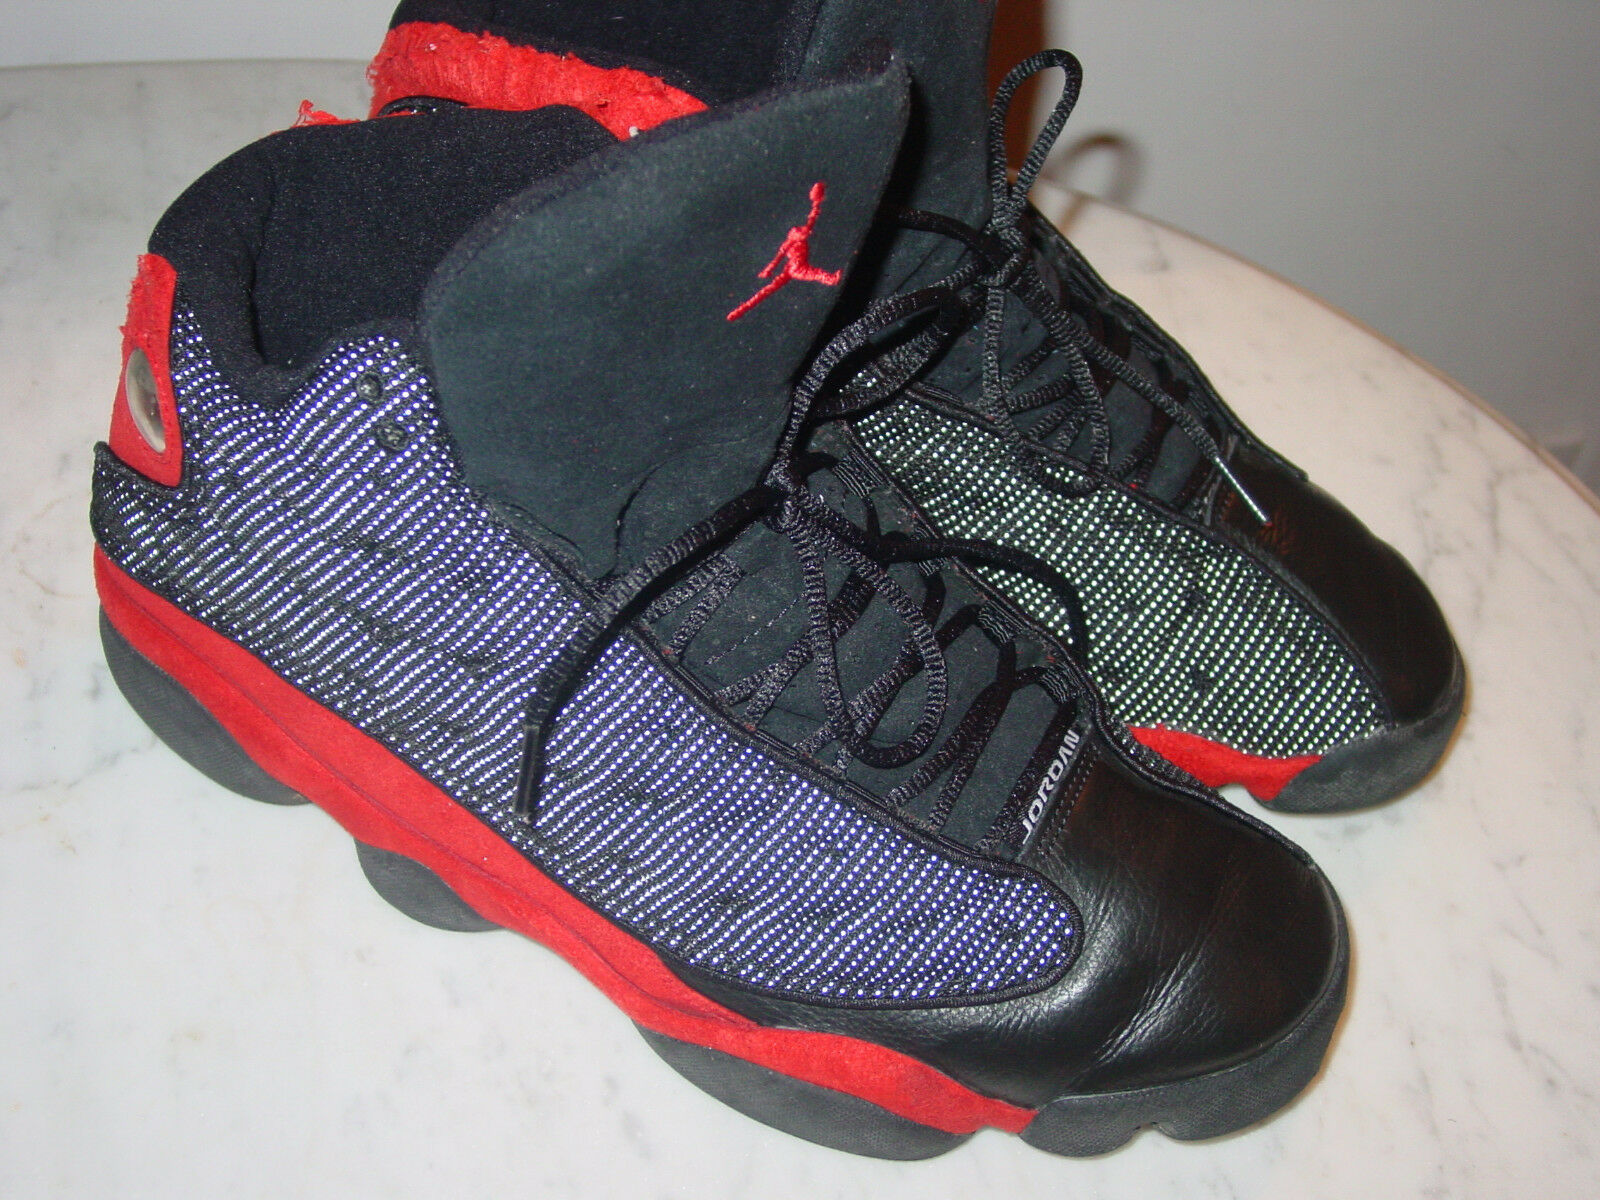 2004 Nike Air Jordan Retro 13 Black/True Red Basketball Shoe Size 13 Sold As Is!